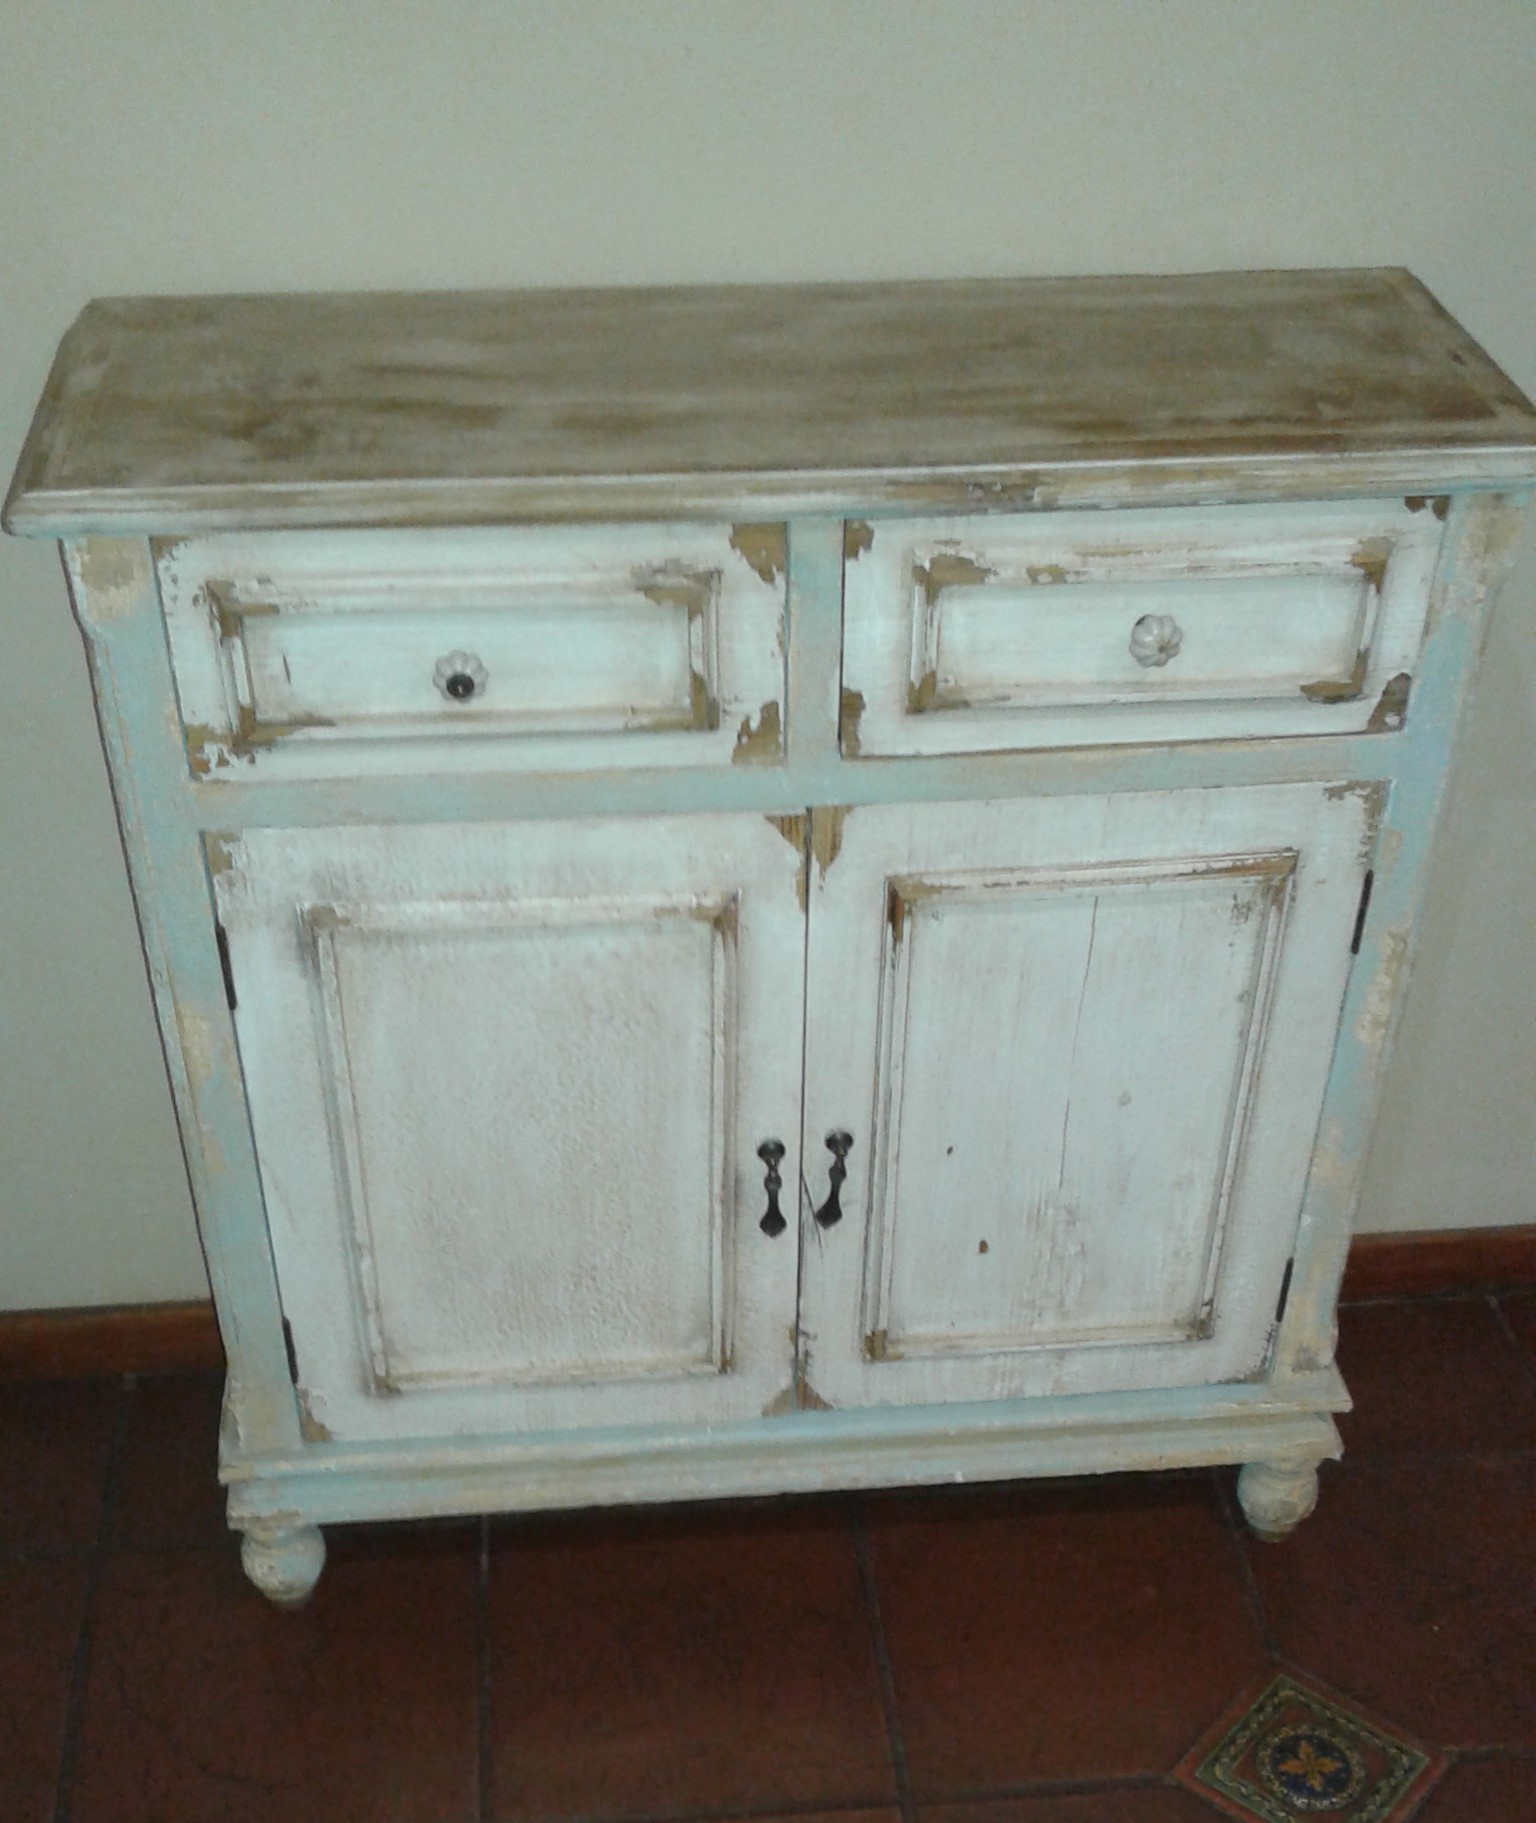 Home Decor/ 2 Drawer Distressed Cabinet